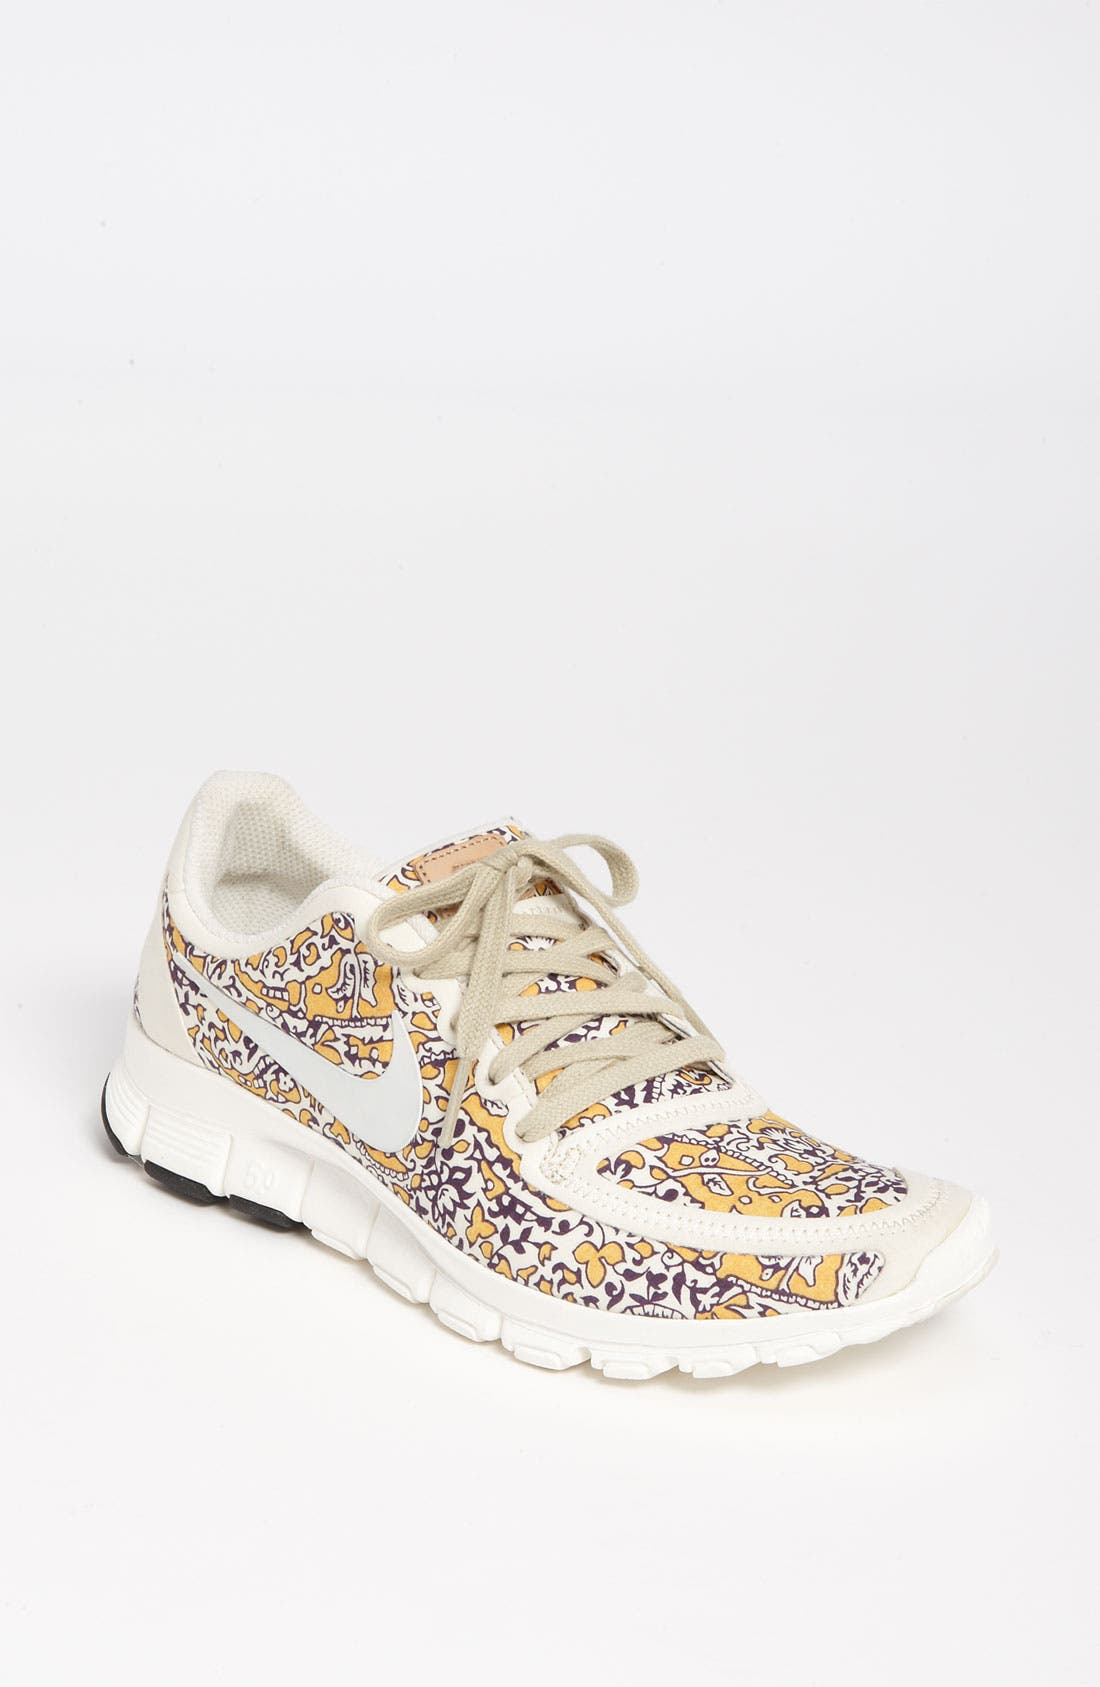 Alternate Image 1 Selected - Nike 'Free 5.0 Liberty' Sneaker (Women) (Exclusive)